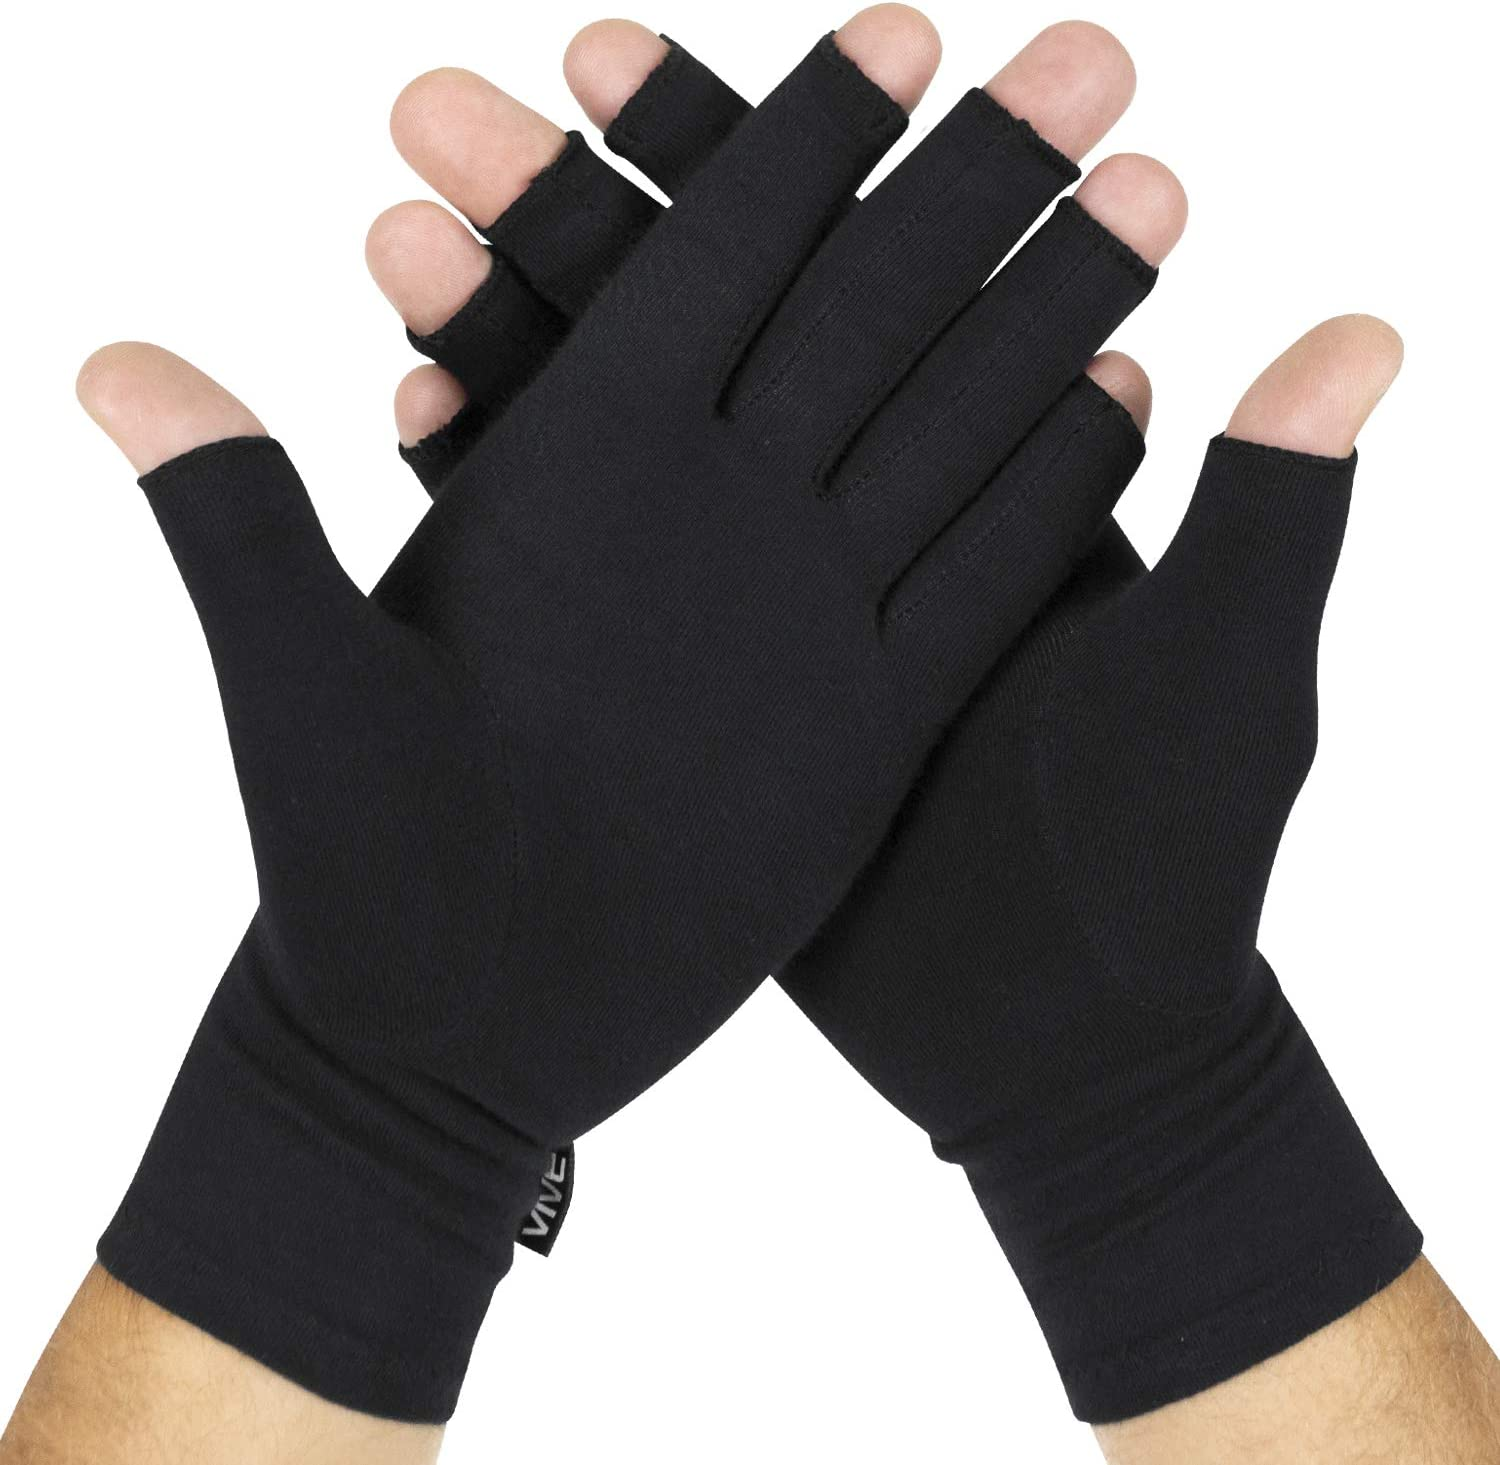 Vive Rheumatoid Arthritis Gloves - Men and Women Fingerless Compression Wrap for Hand Pain and Osteoarthritis - Black Hand Wrap for Arthritic Joint Symptom Relief - Open Finger Fit